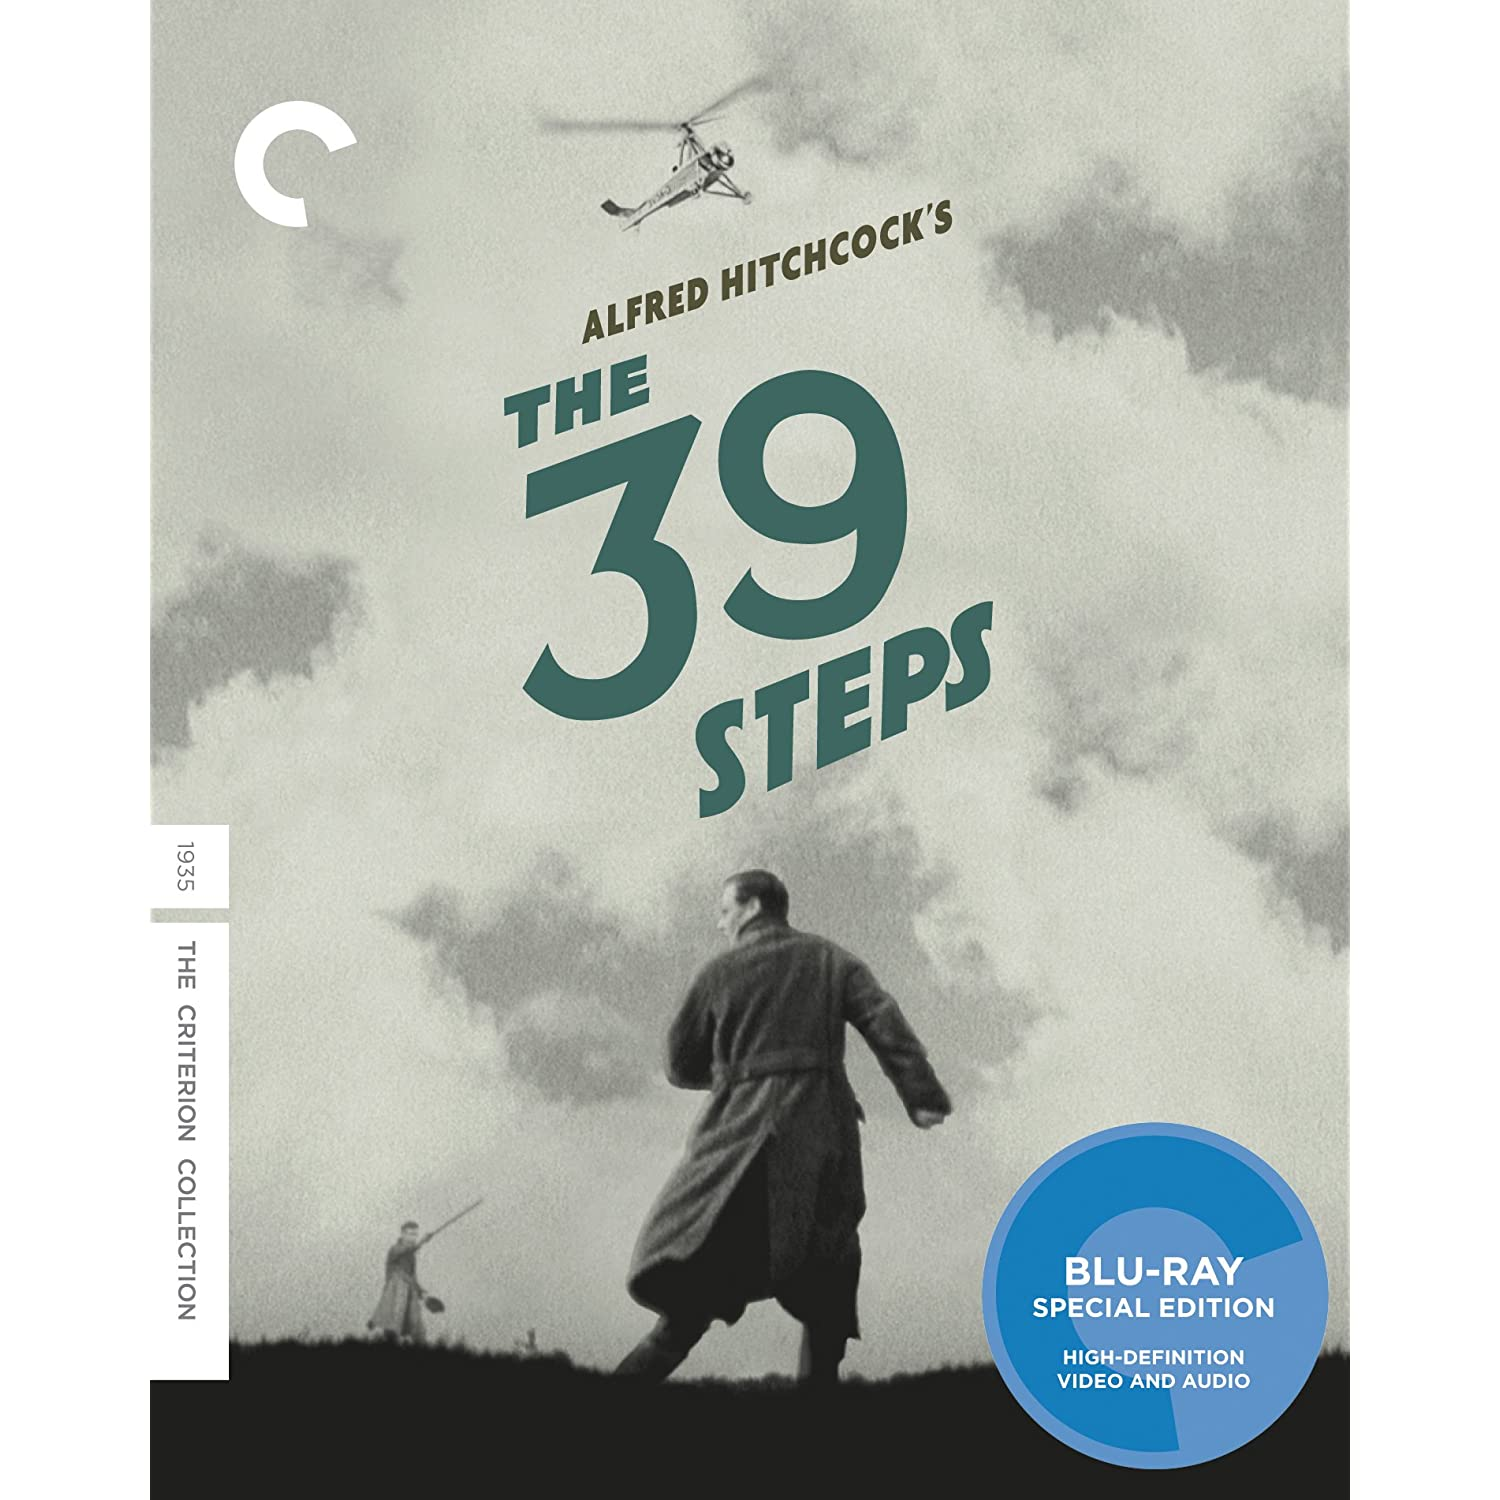 The 39 Steps: CC